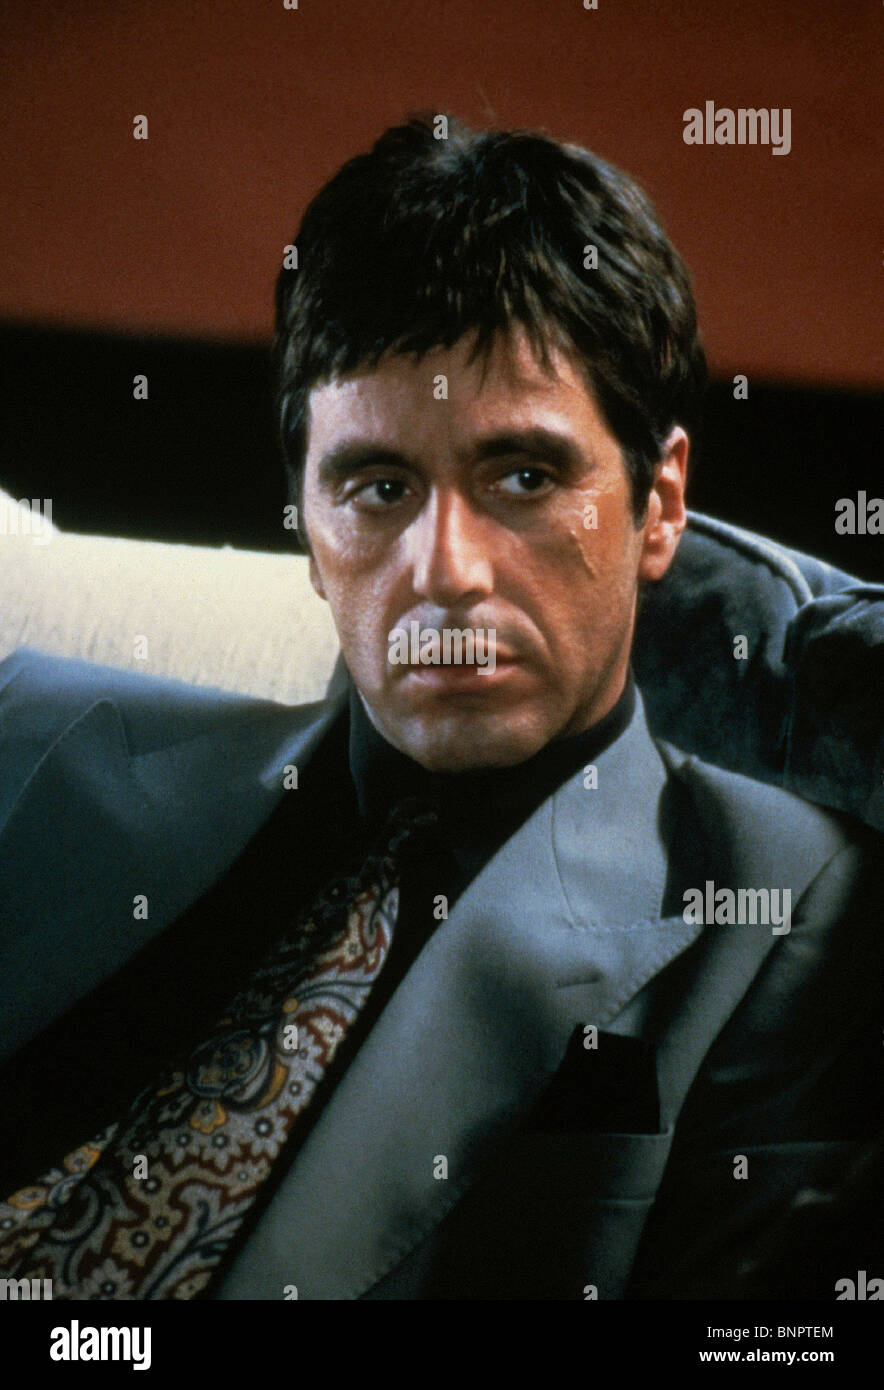 Tony montana stock photos tony montana stock images alamy - Scarface images ...